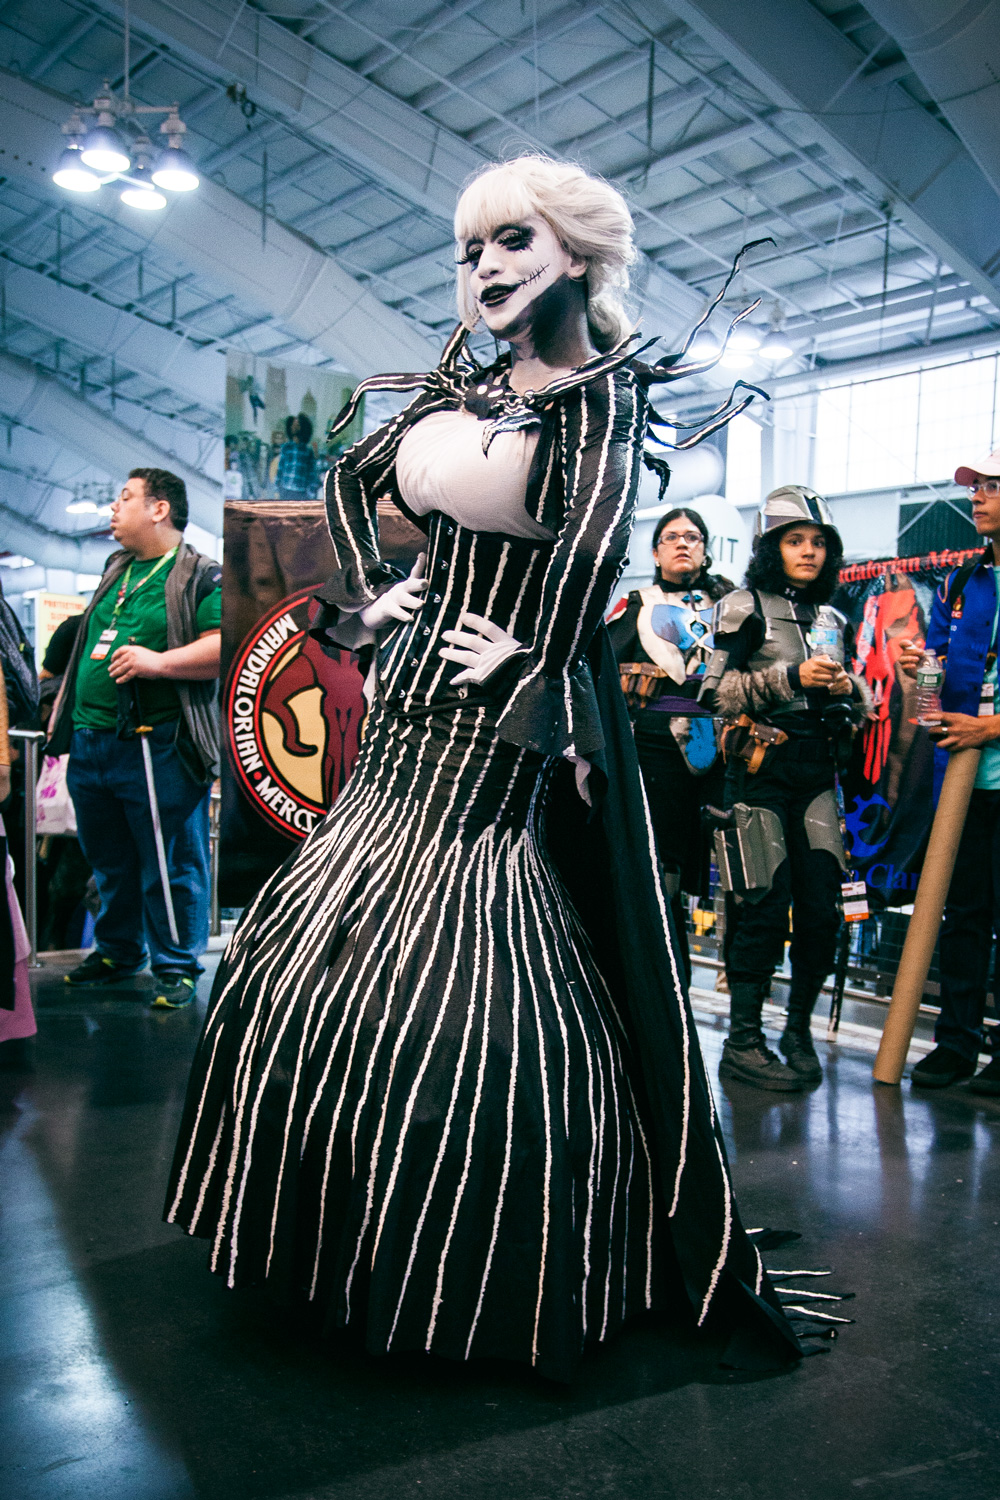 NYCC Jack Skellington Cosplay